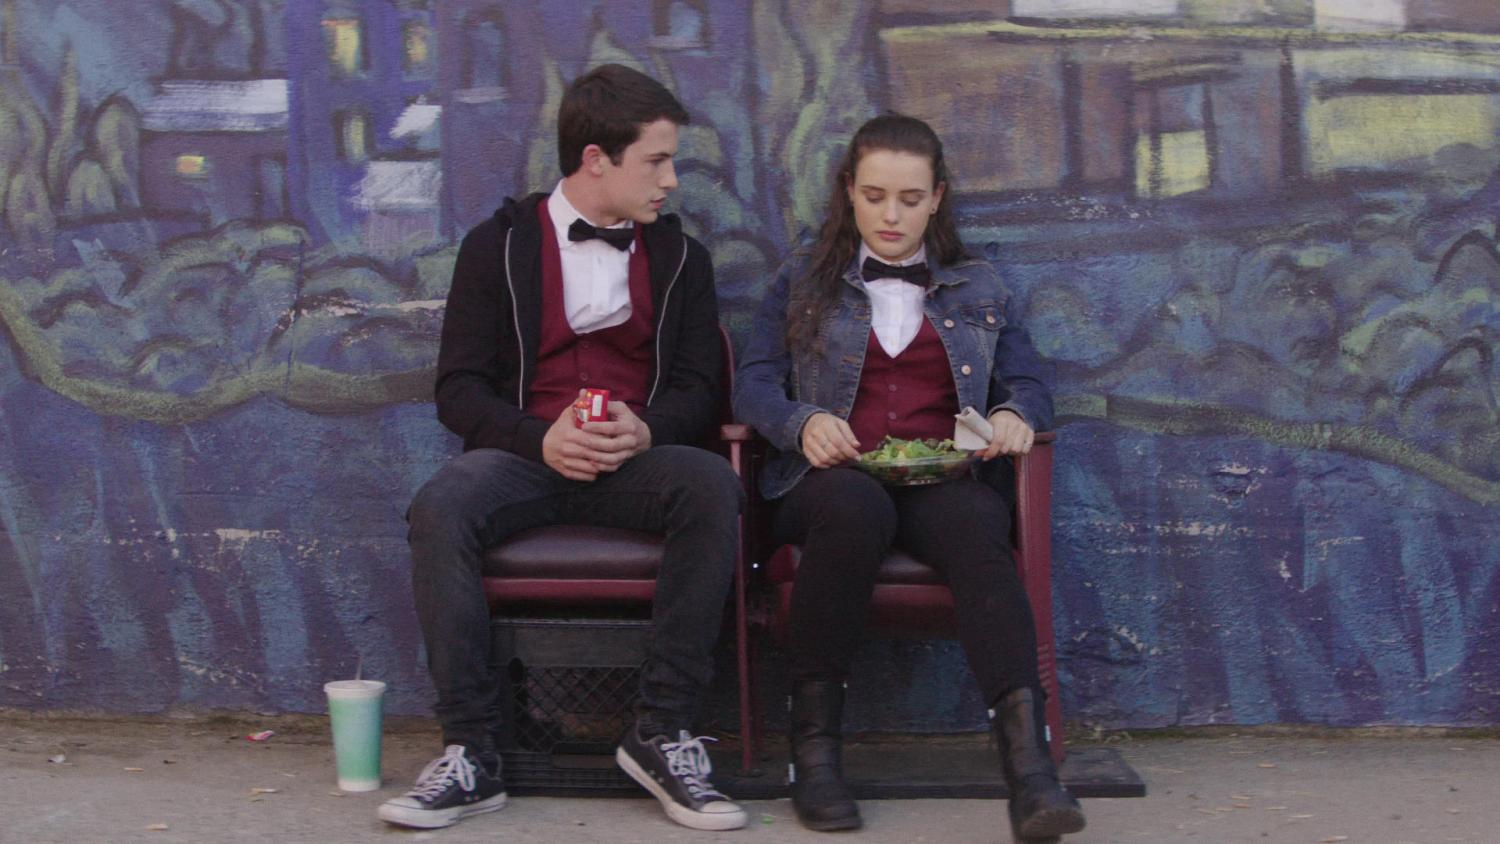 Hannah Baker (Katherine Langford) and Clay Jensen (Dylan Minnette) met at a movie theater before forming a friendship, and later confusing relationship.